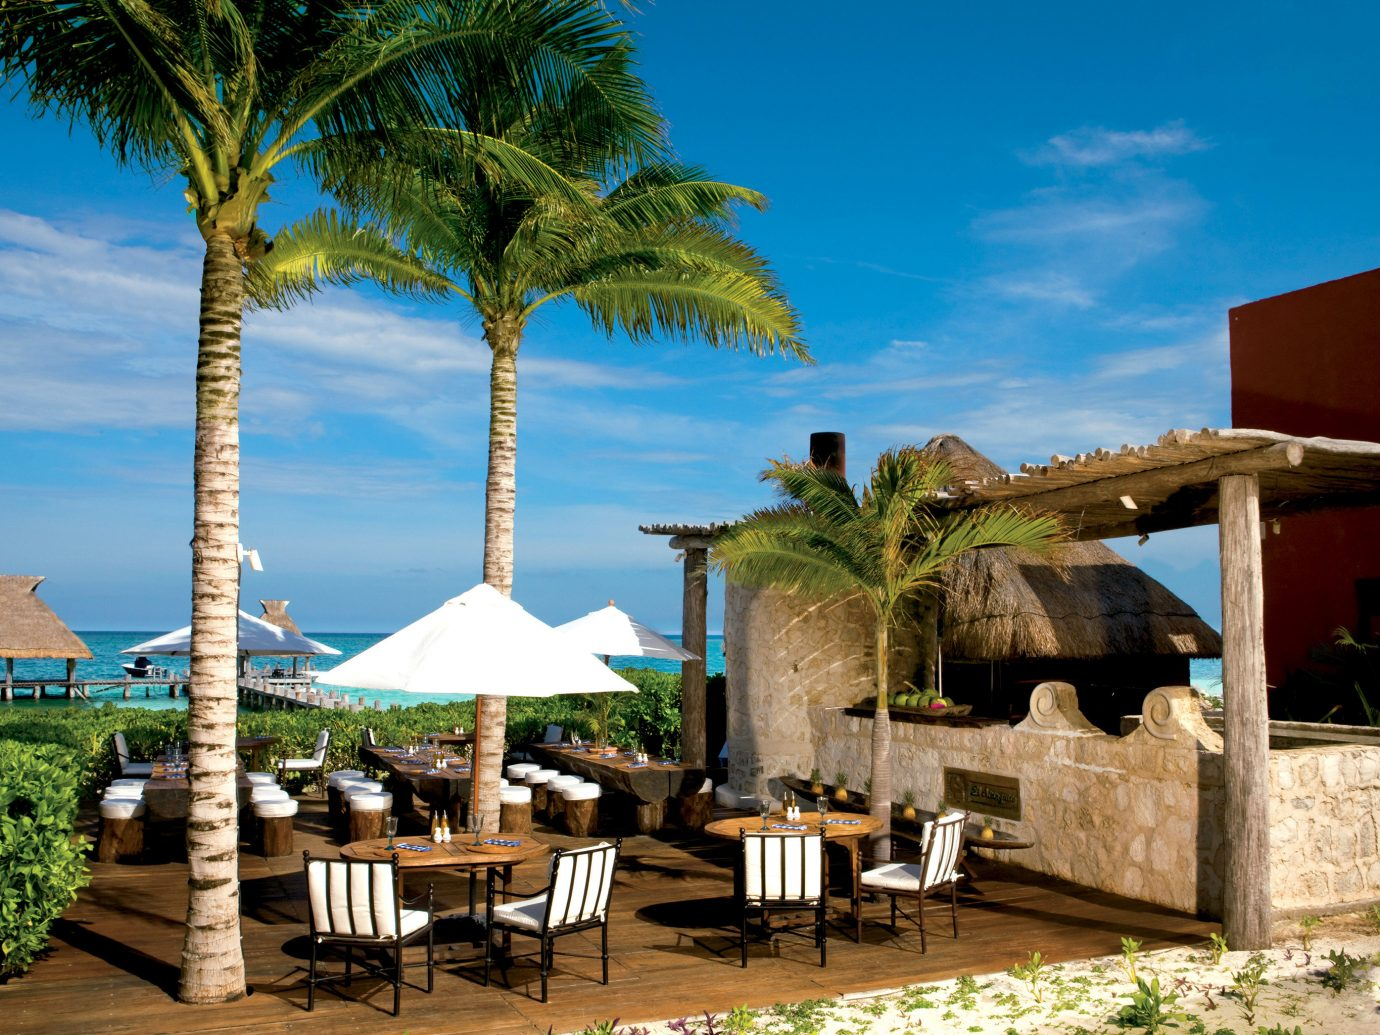 Beach Beachfront Deck Dining Hotels Living Lounge tree outdoor chair property vacation Resort hacienda estate arecales wooden tourism Villa caribbean area plant furniture